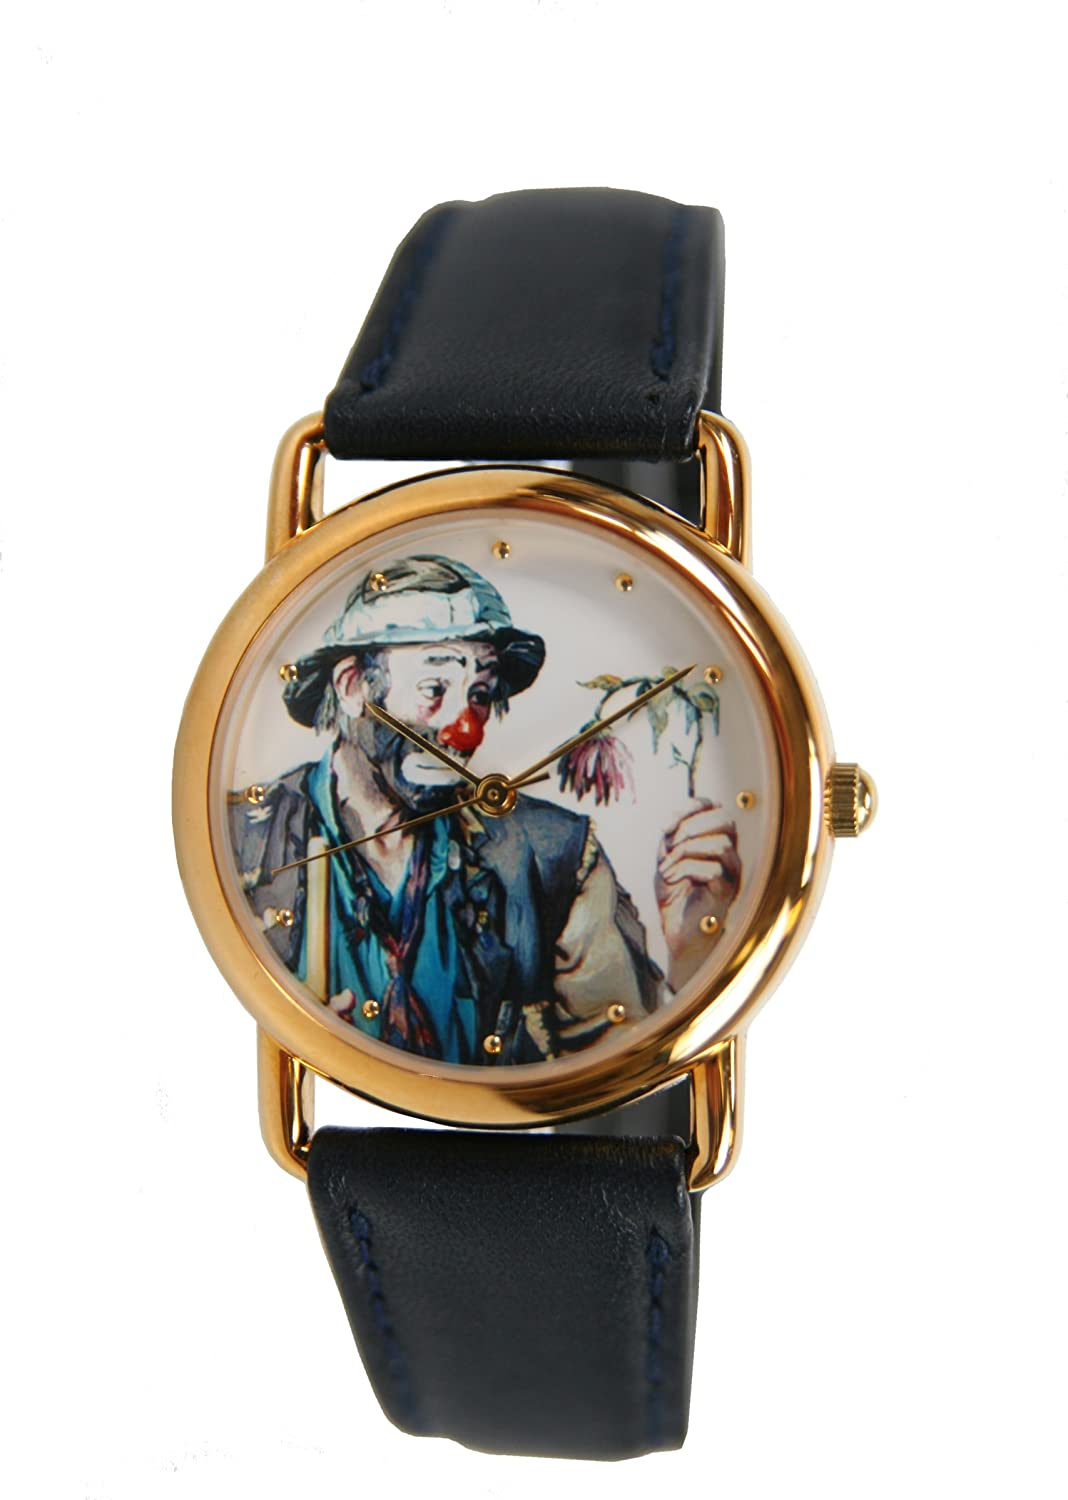 Unisex Gold-Tone Round Sad Hobo Clown Holding Wilted Flower Watch 7290GX